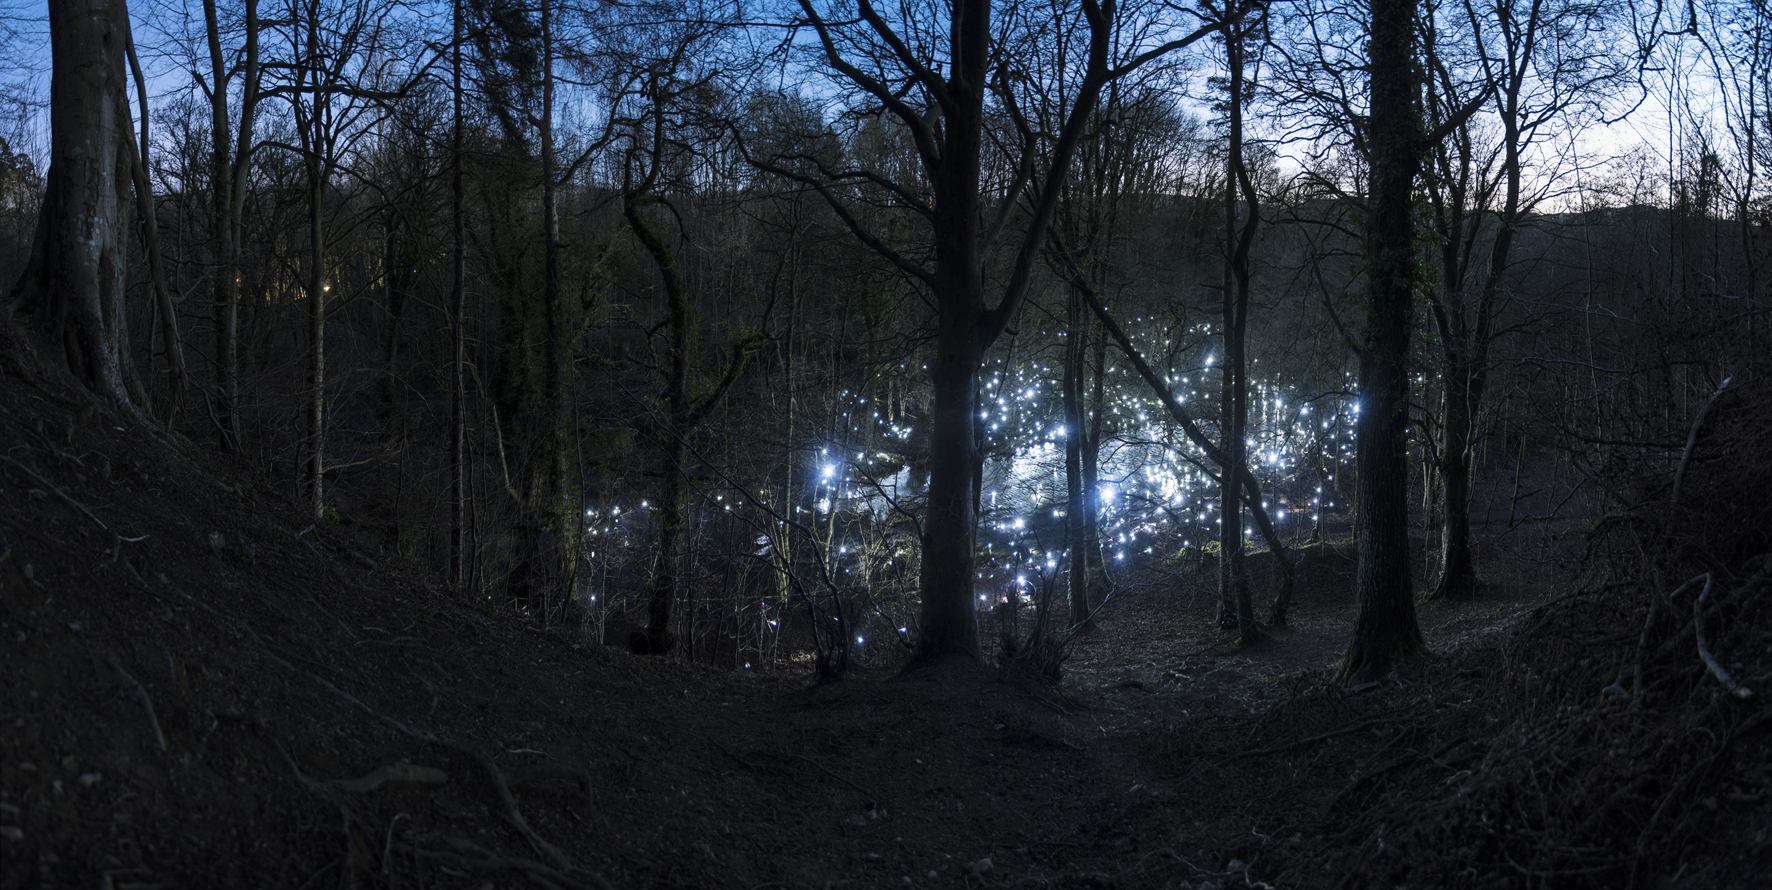 Terrain No. 3 | David Ogle, 2017 | LED keyring torches | landscape installation (photograph) | part of Loomings: produced by: Mark Devereux Projects | image: Andrew Brooks